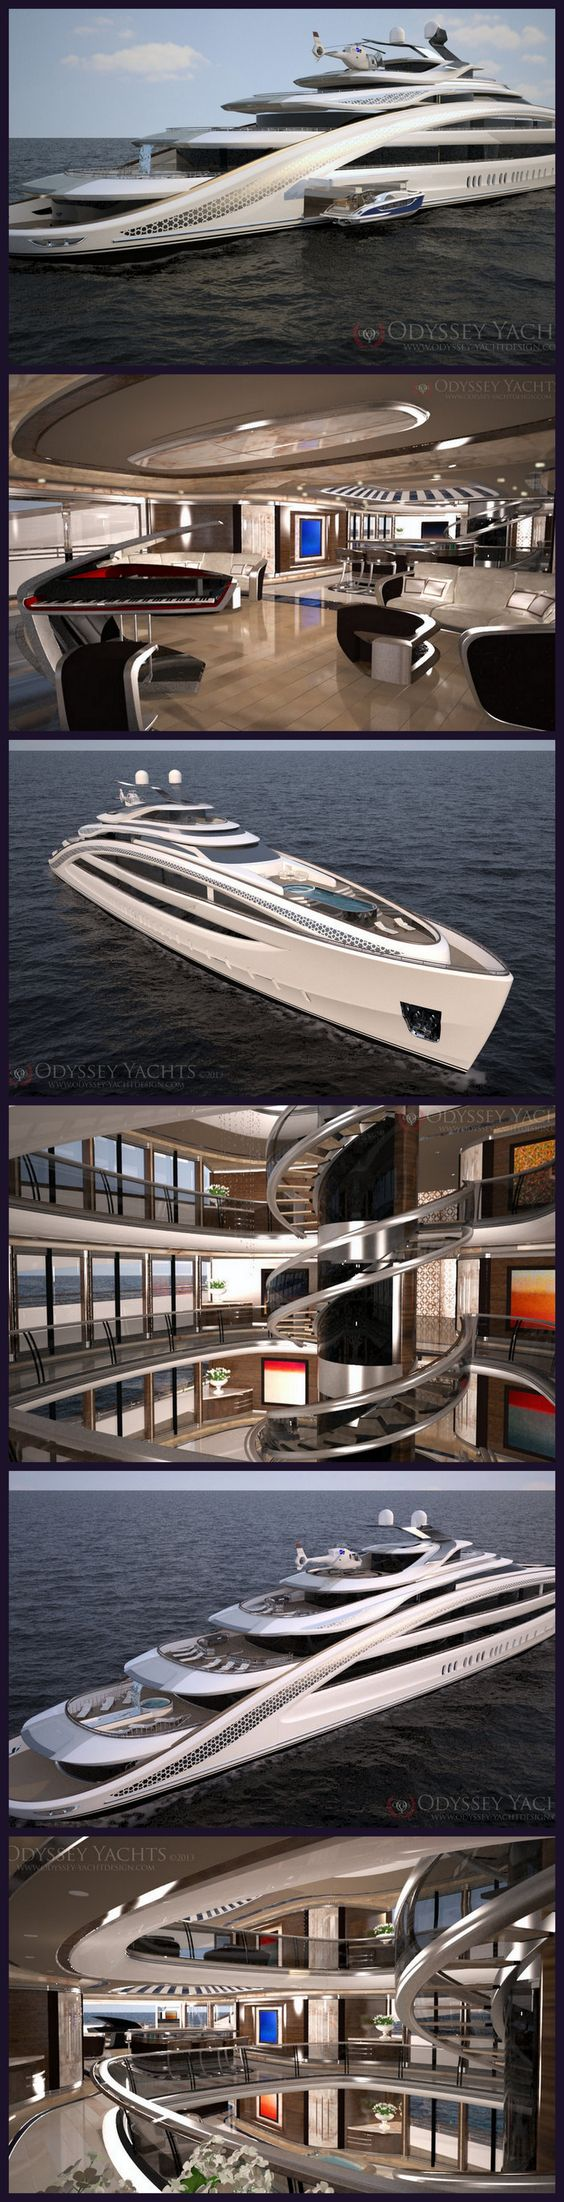 Odyssey Yachts announce release of 95m Yacht 'Nautilus' project!  A bit much - but go big or go home eh?